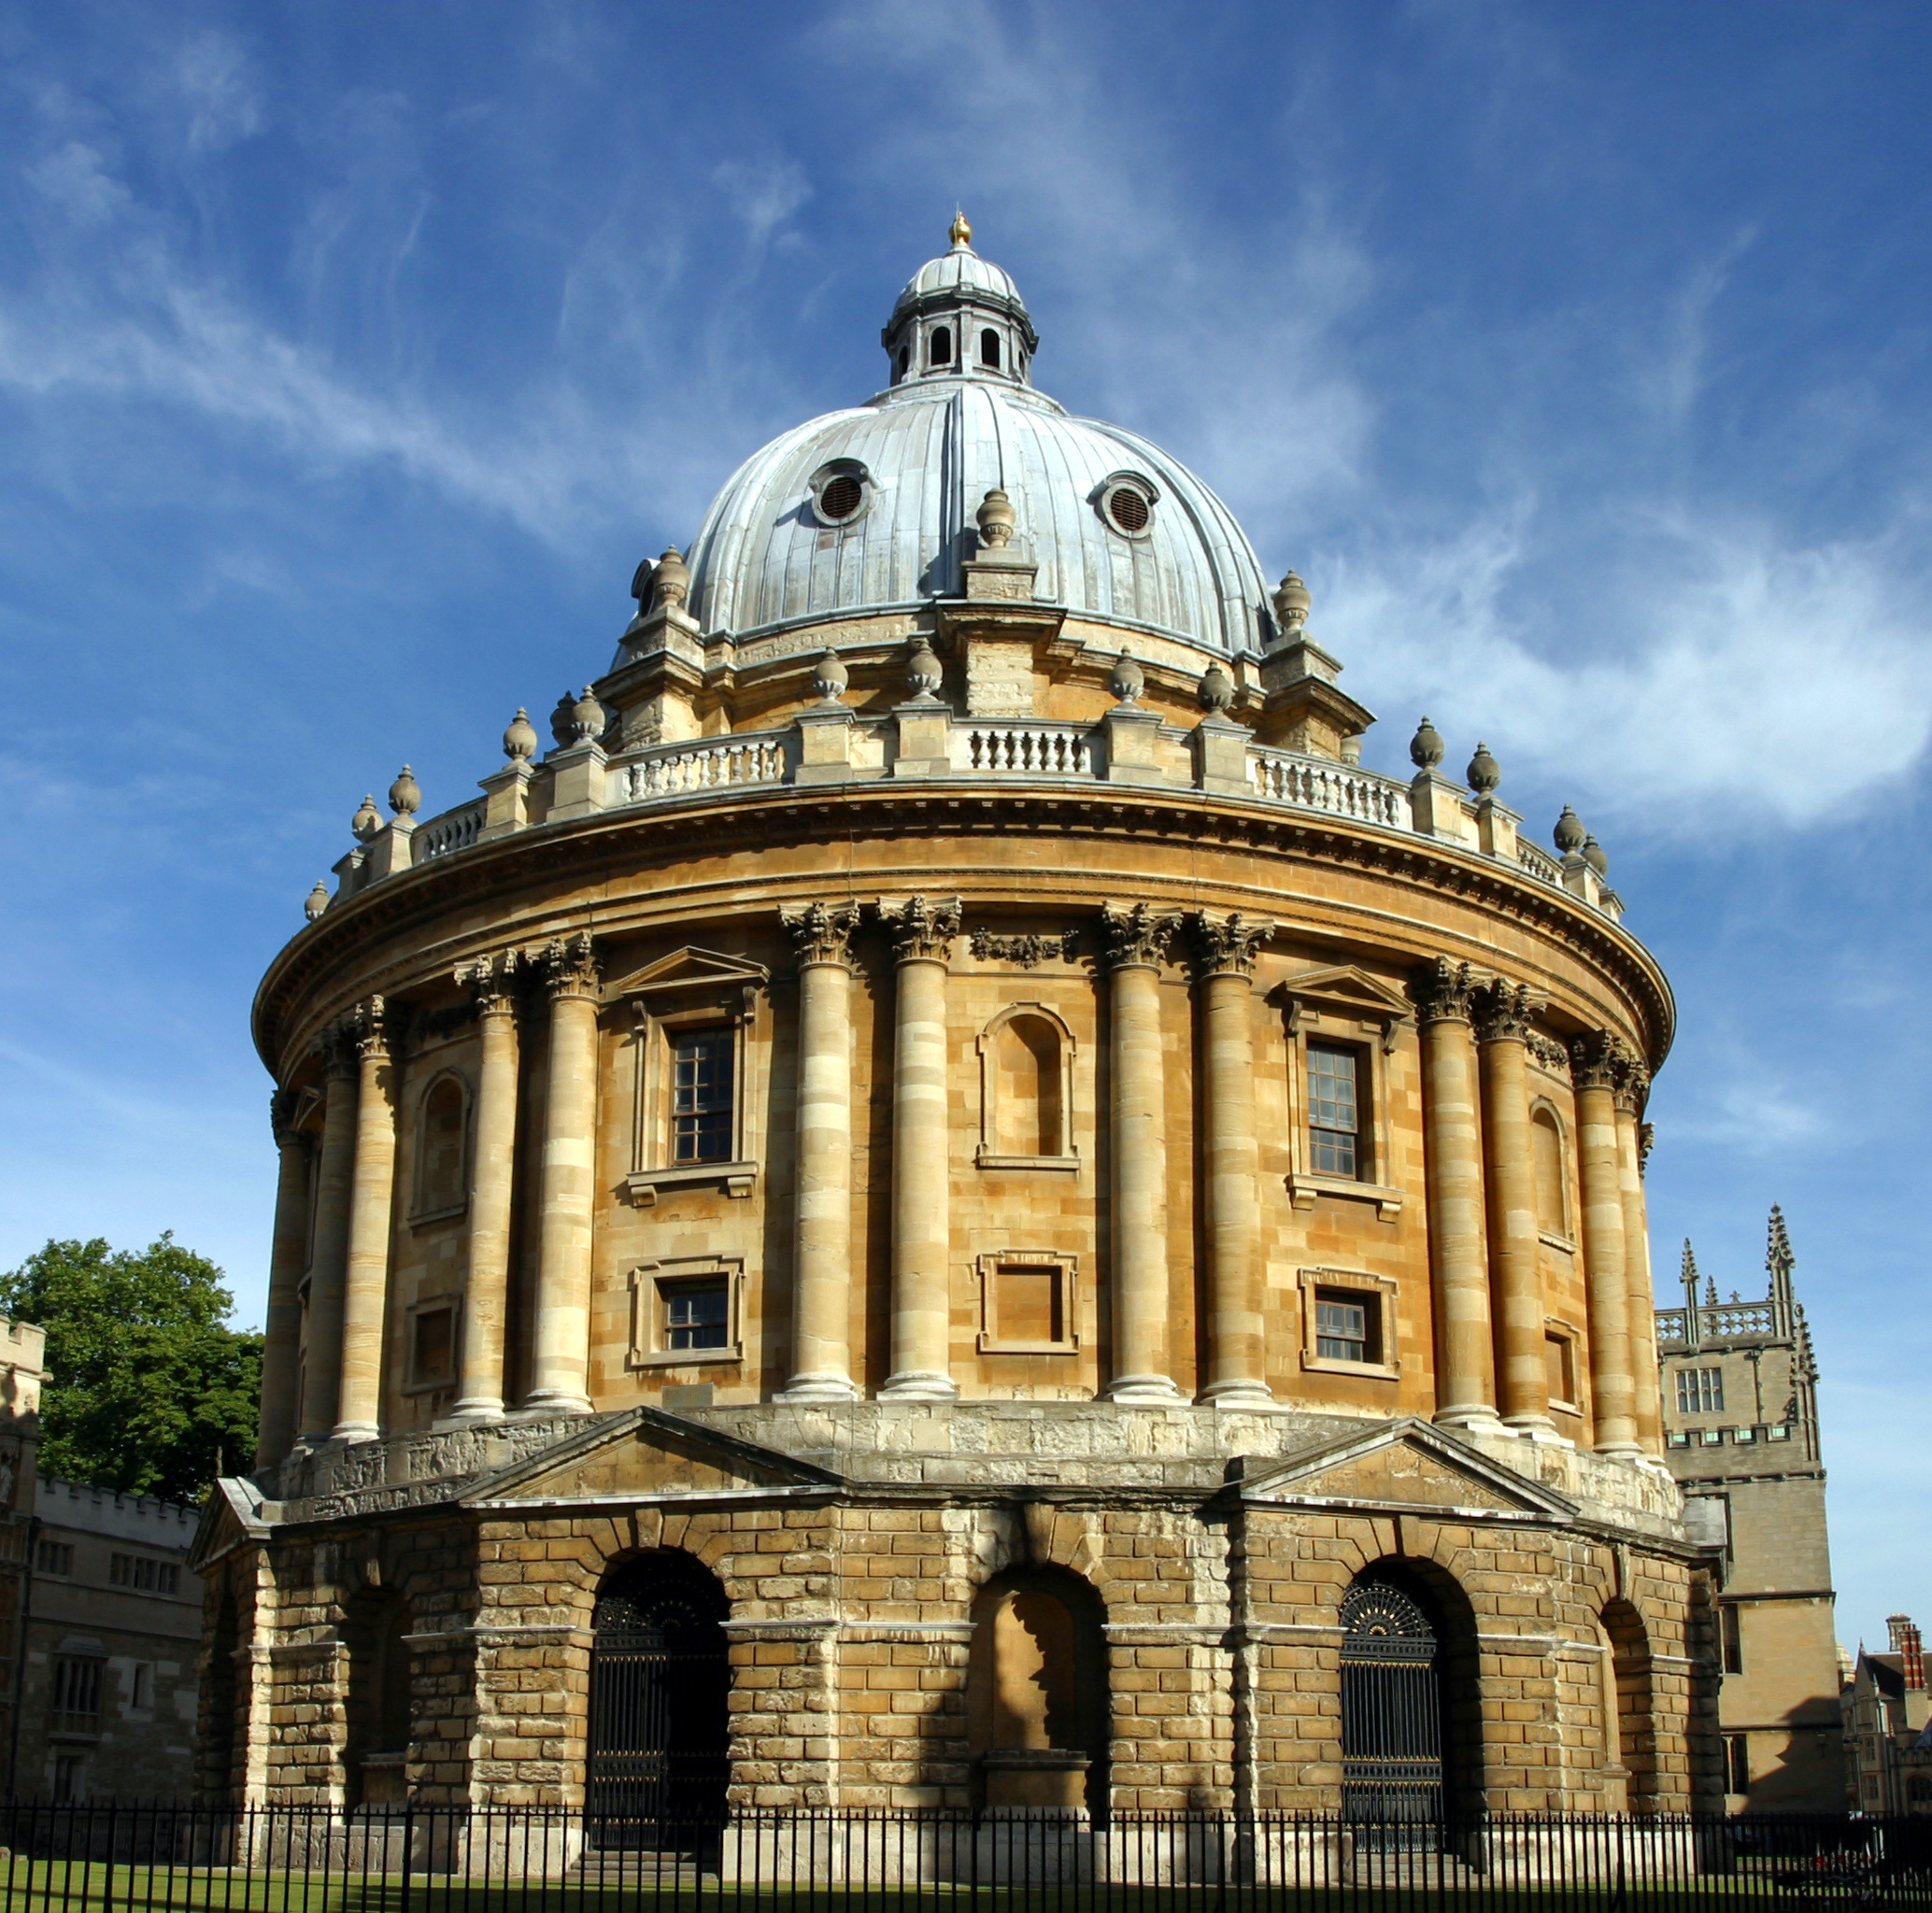 radcliffe camera thanks high HD Wallpaper